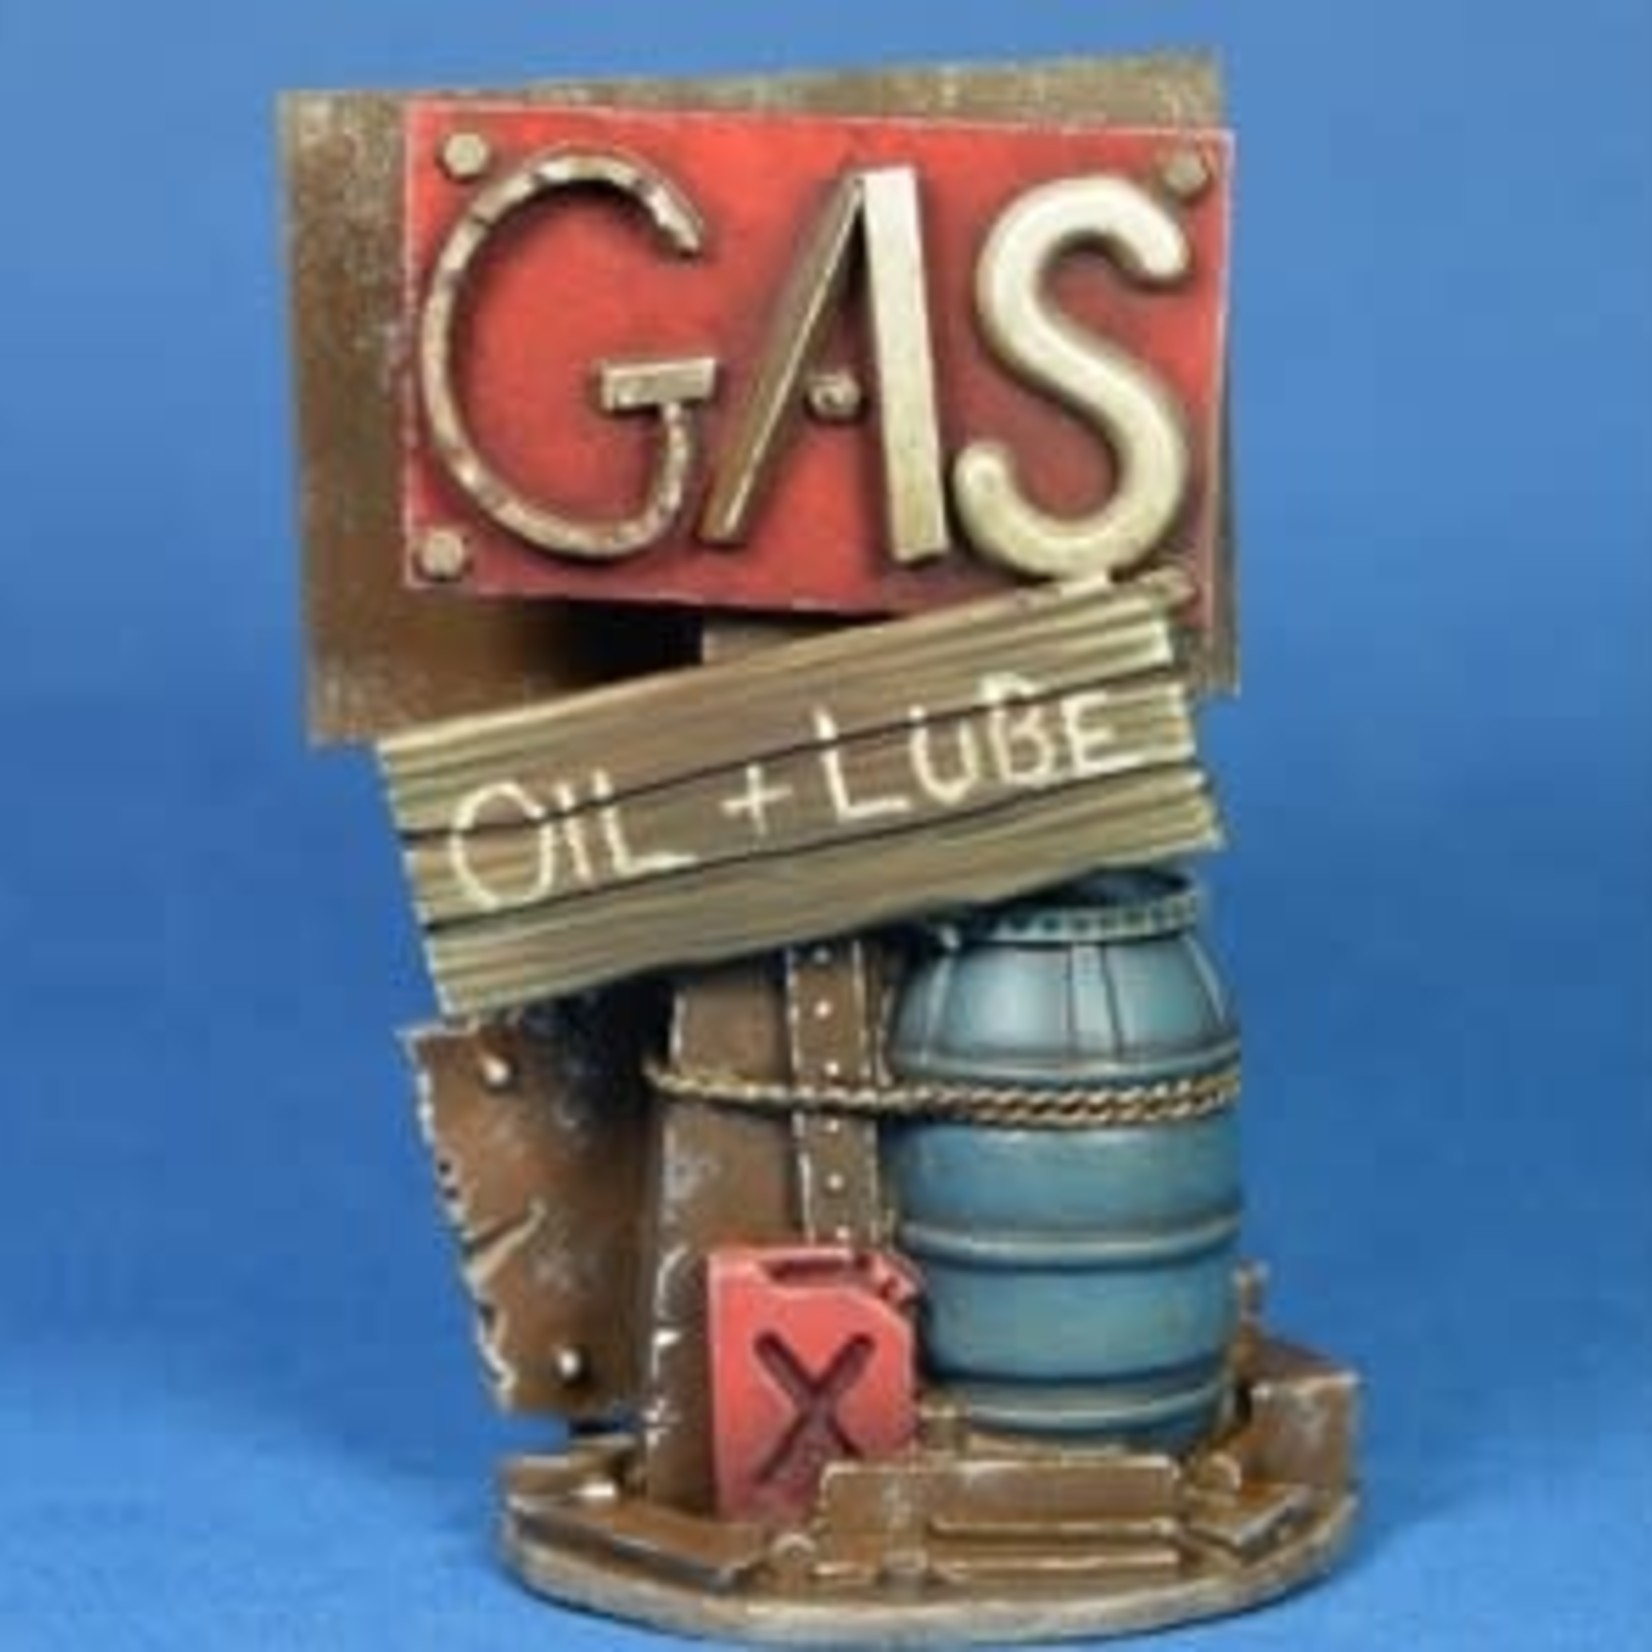 Sign 3 - Gas, H20